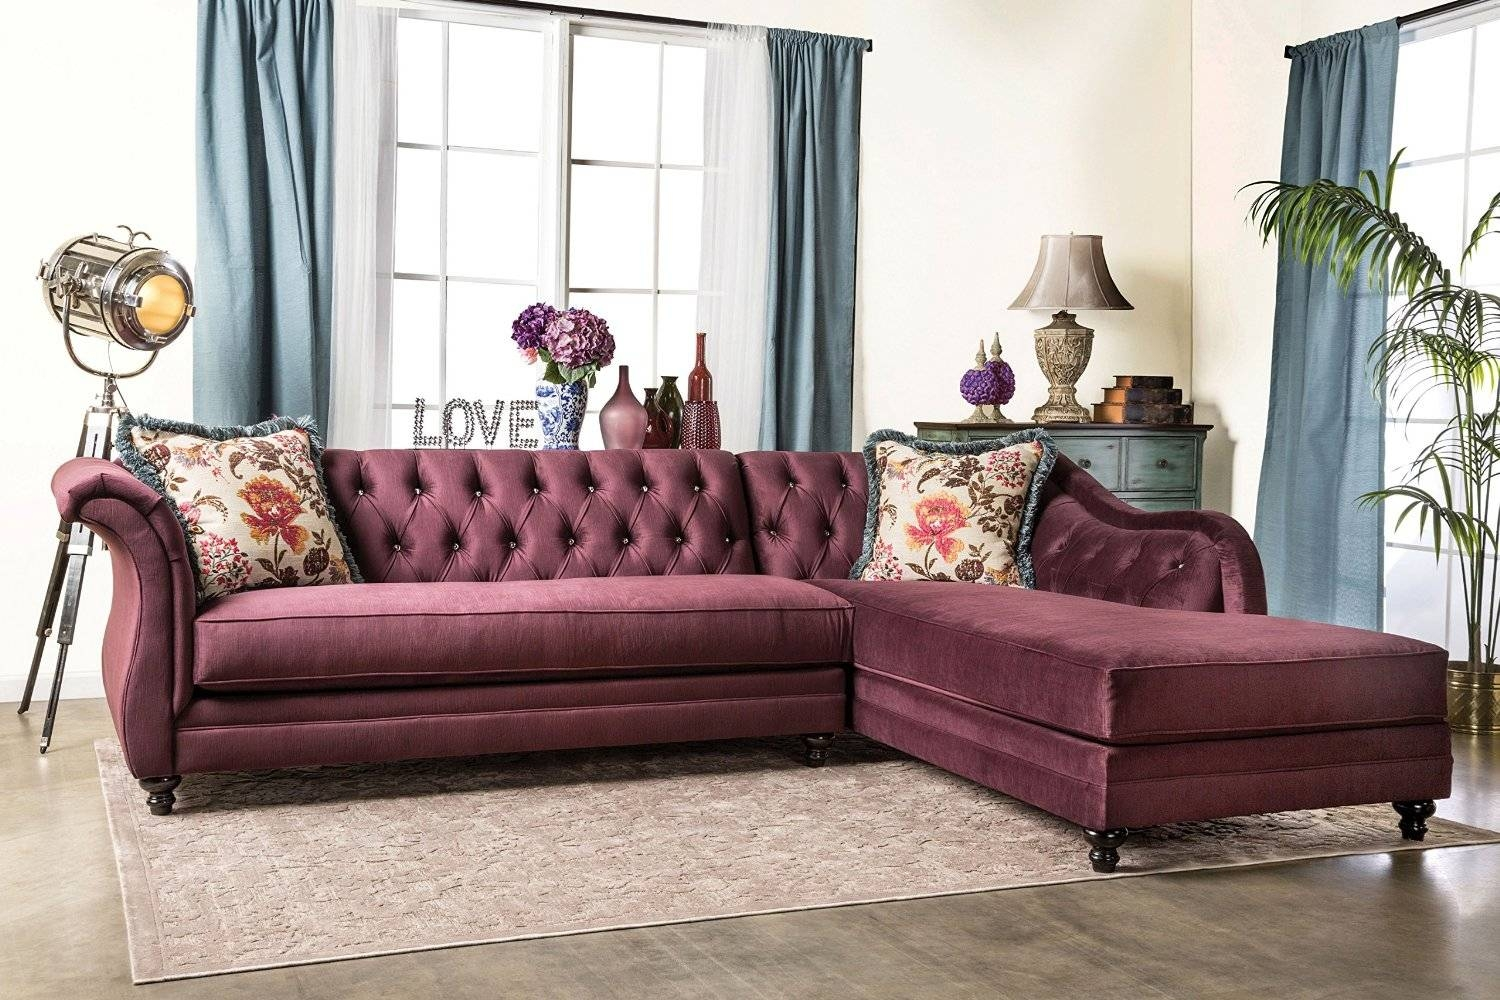 25 Best Chesterfield Sofas To Buy In 2017 Inside Purple Chesterfield Sofas  (Image 1 Of